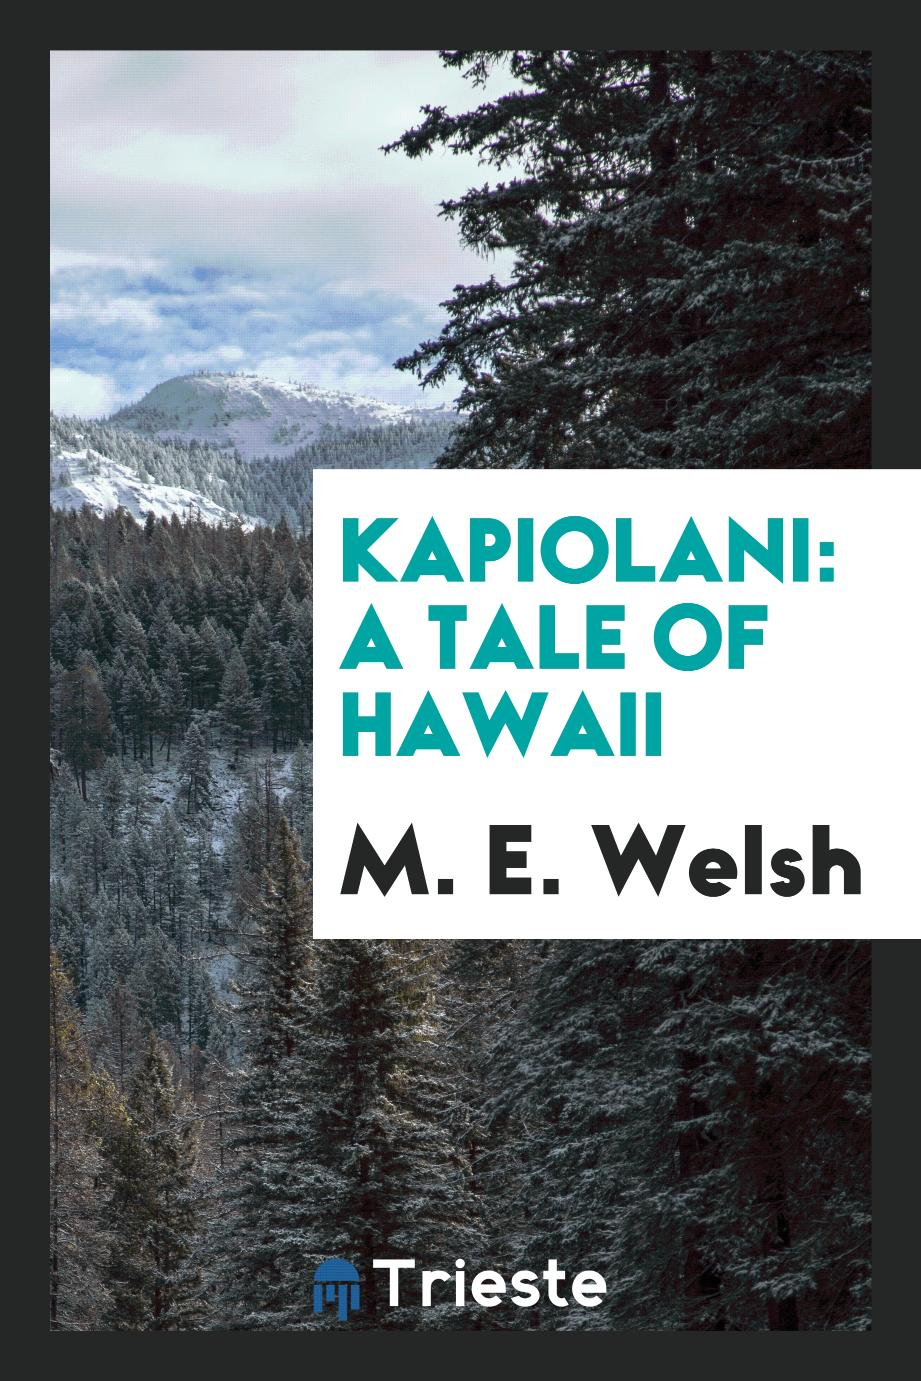 Kapiolani: A Tale of Hawaii